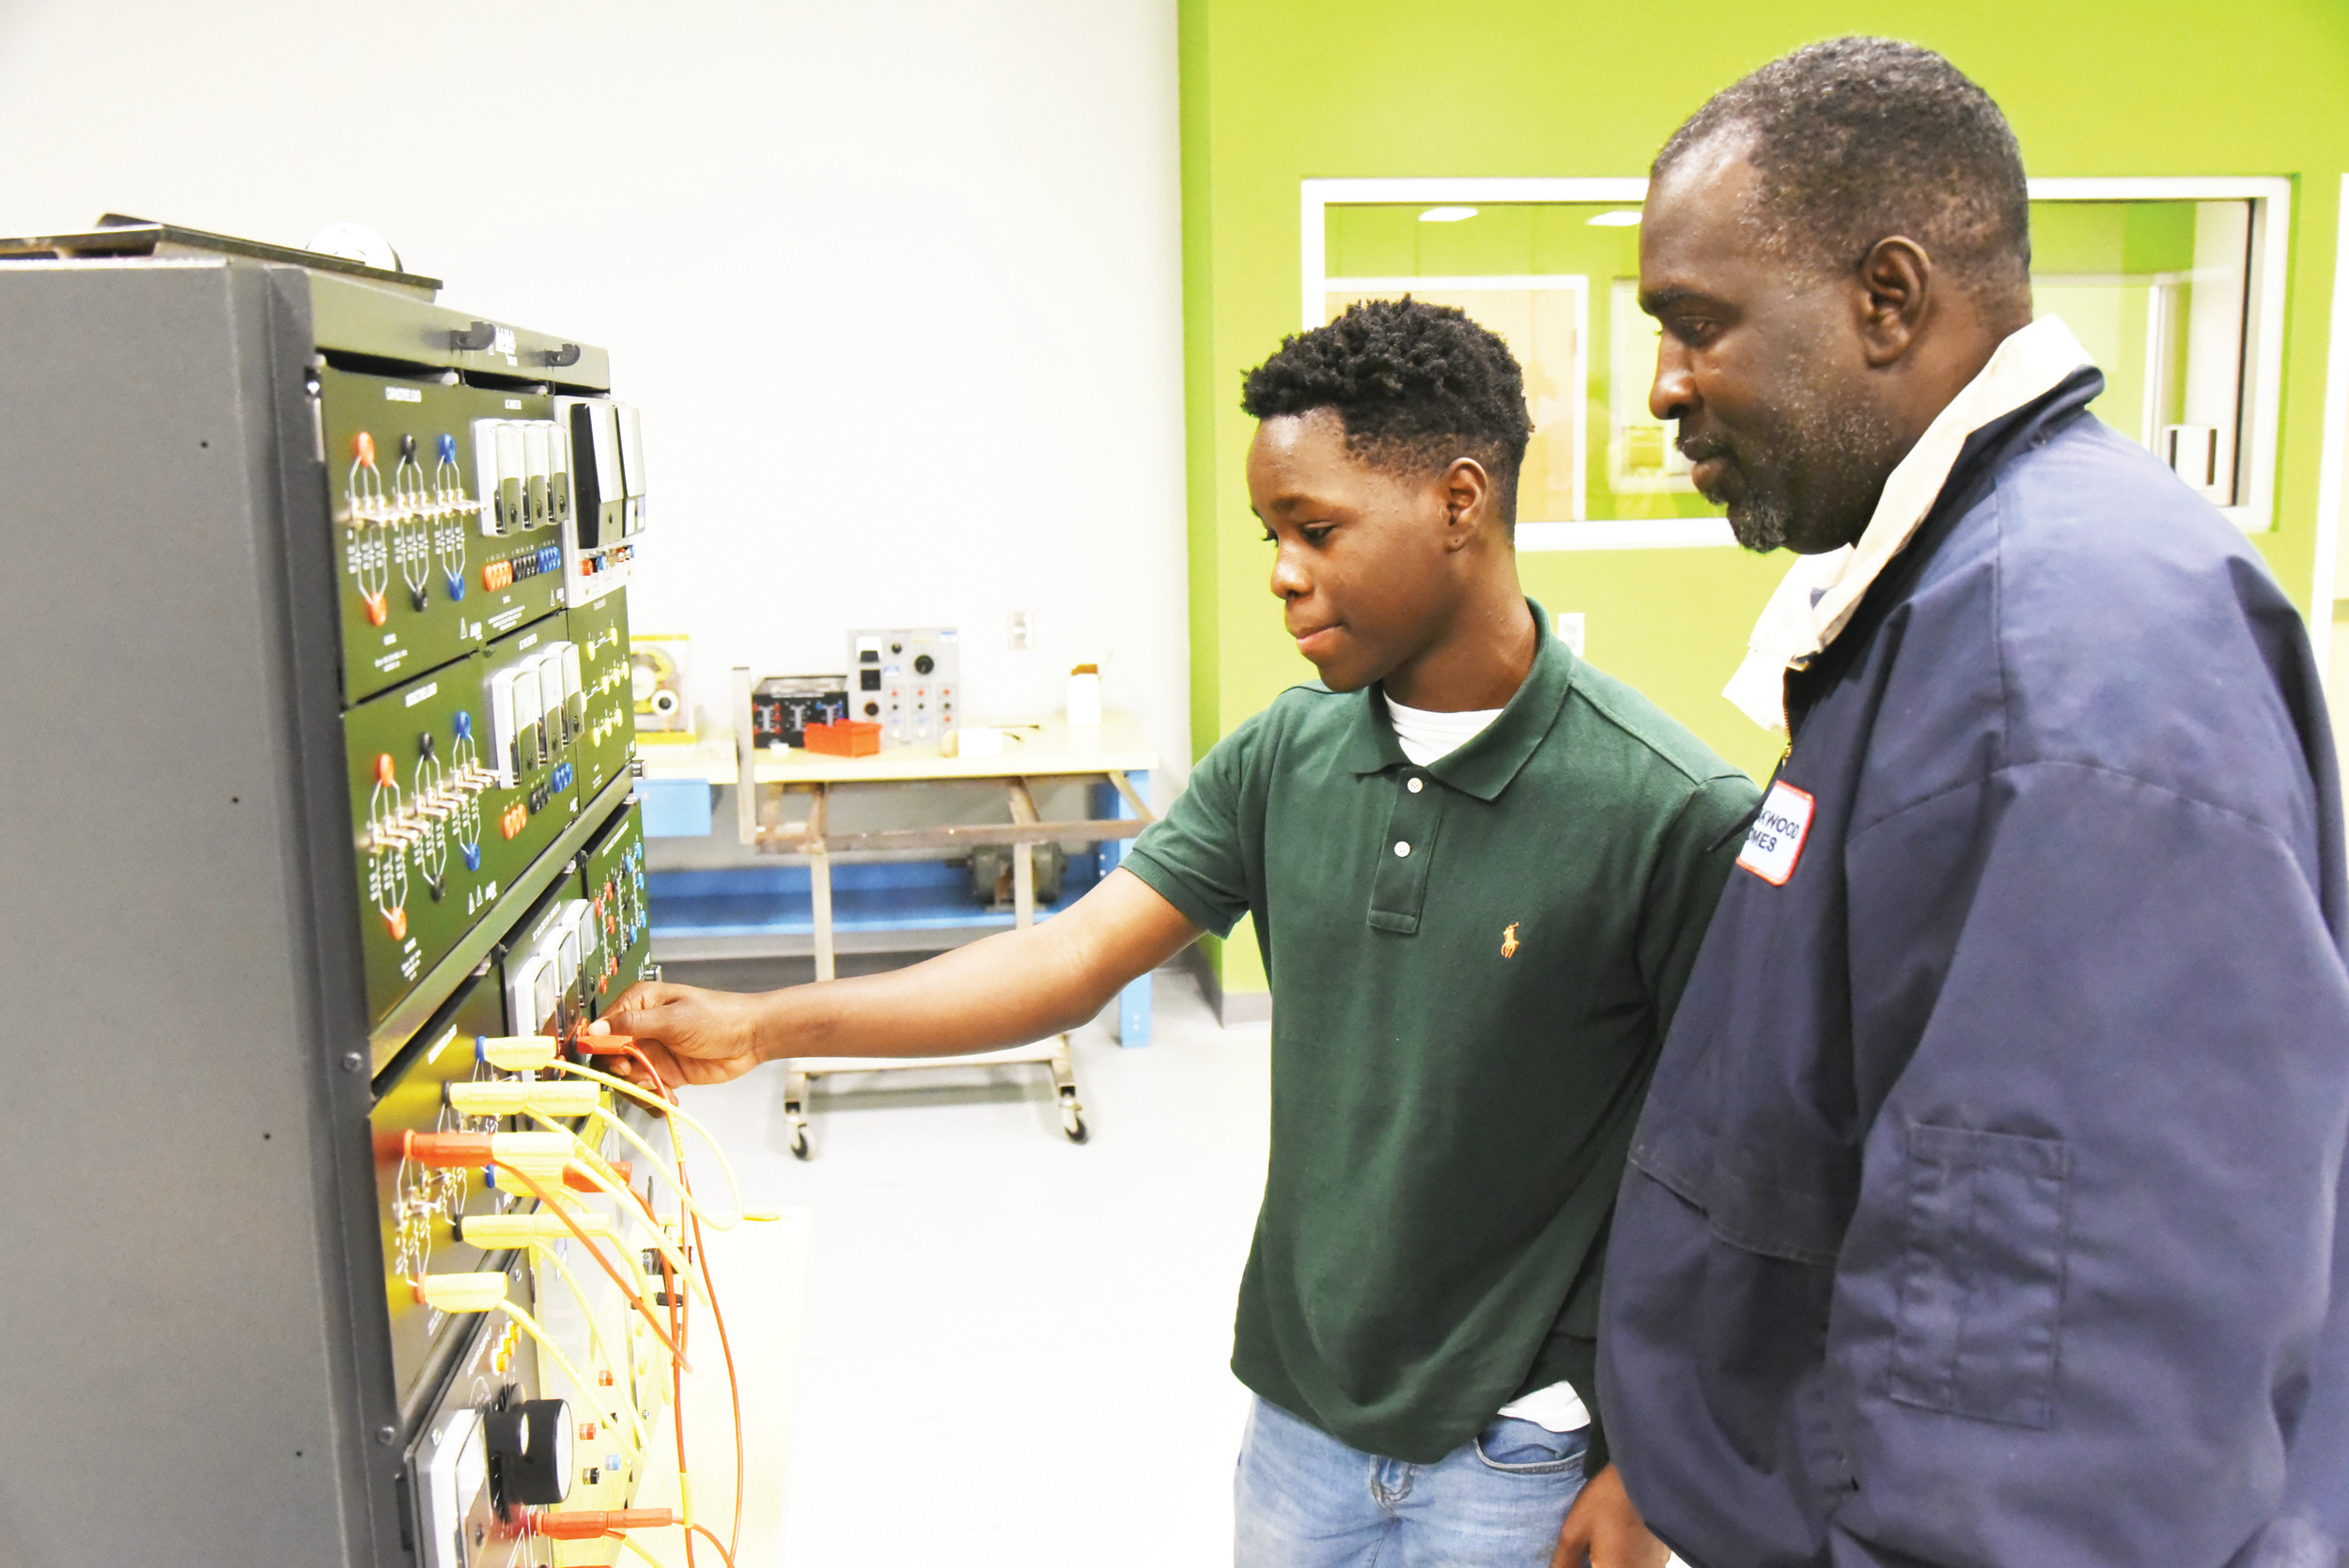 Then-Crestwood High School freshman Christopher Gooding, left, and his father, John, inspect some mechatronics classroom equipment recently at Central Carolina Technical College's Advanced Manufacturing Technology Training Center in Sumter. CCTC will start a youth apprenticeship program for high school seniors for mechatronics and machine tools.